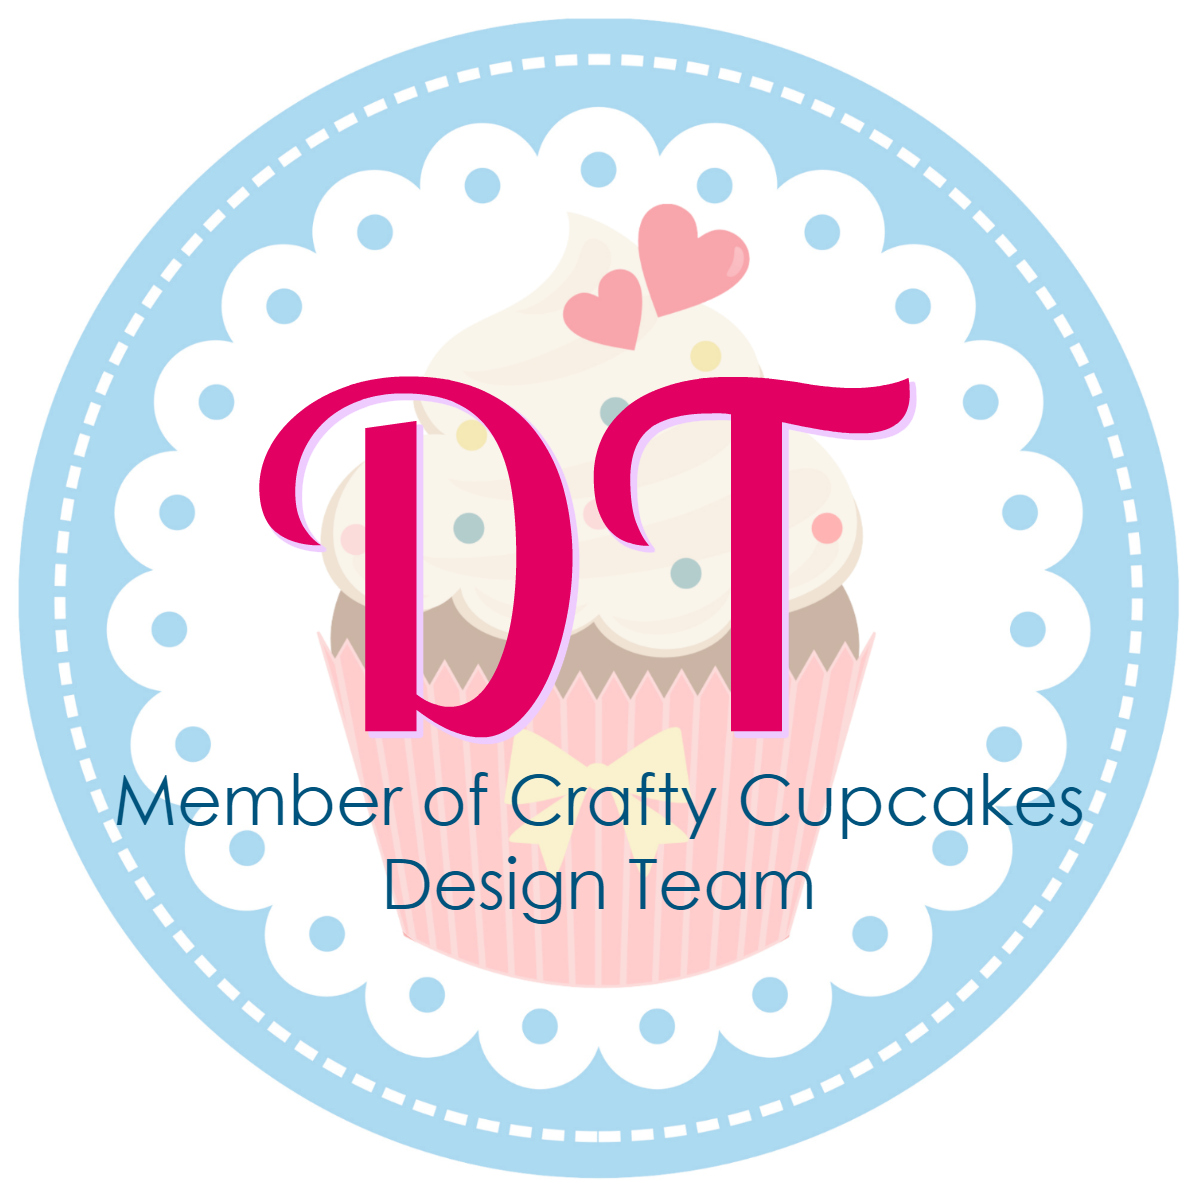 Crafty Cupcakes Design Team